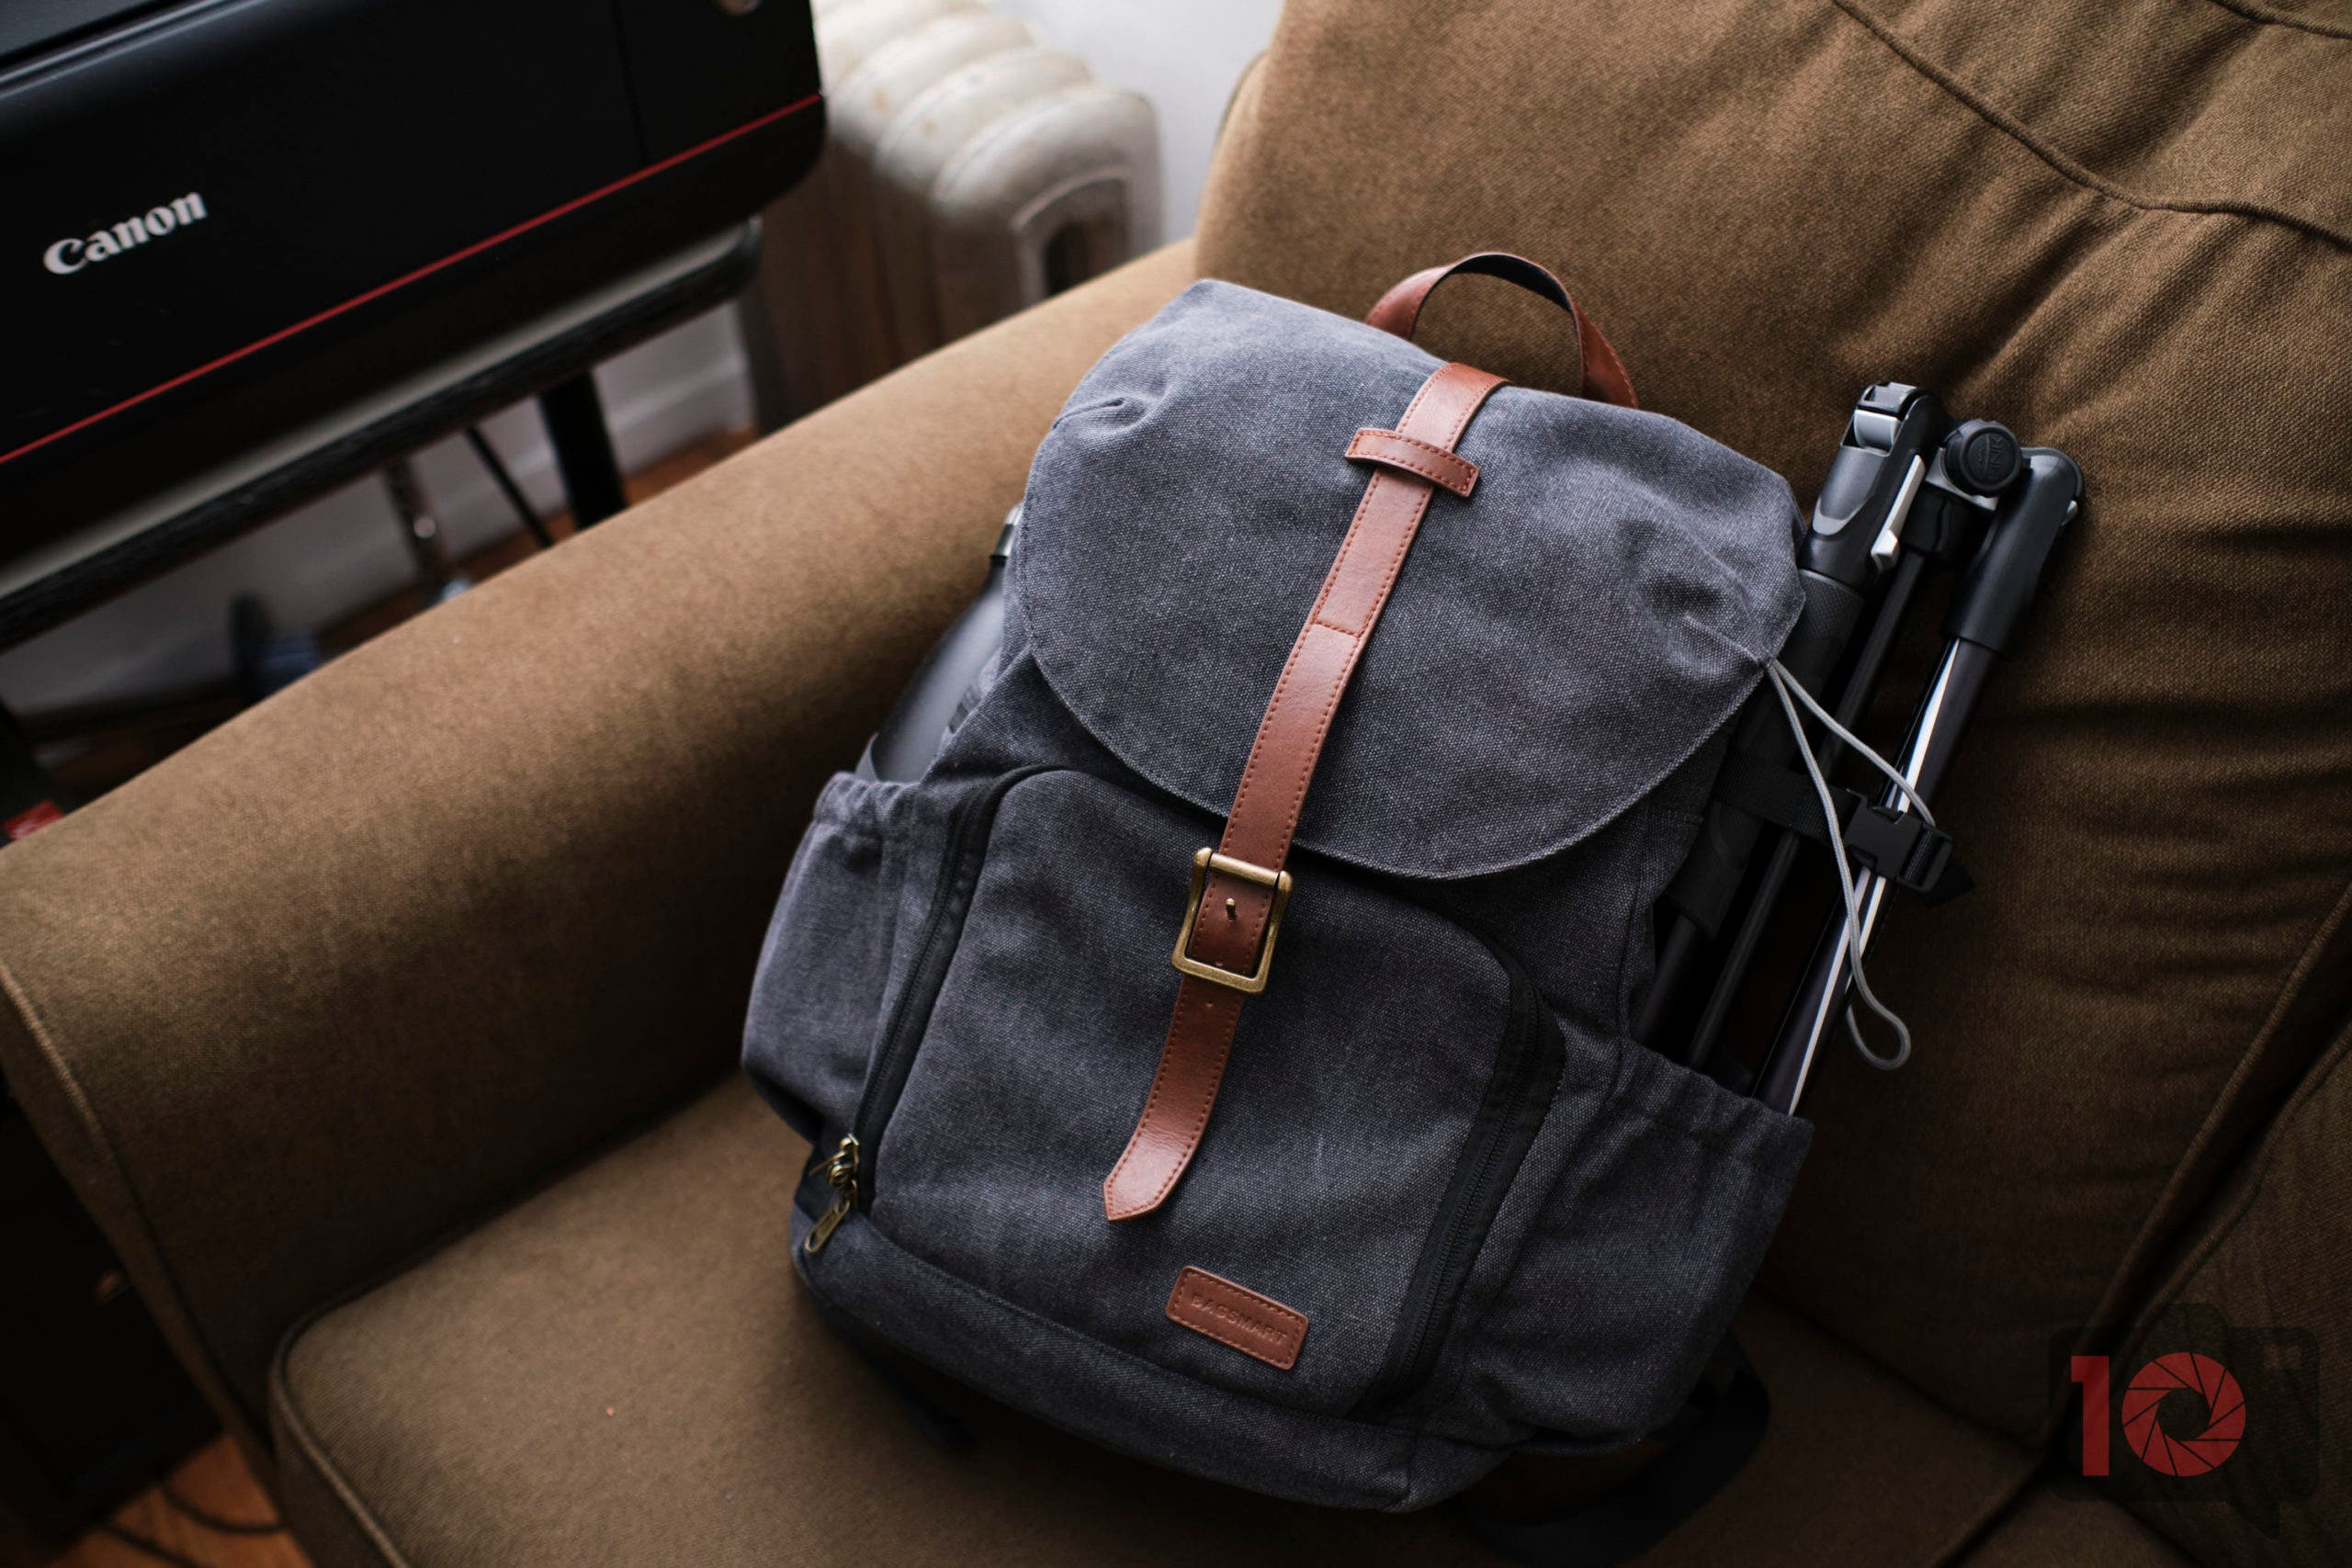 Our Best Selling Camera Bag Just Got a Price Drop